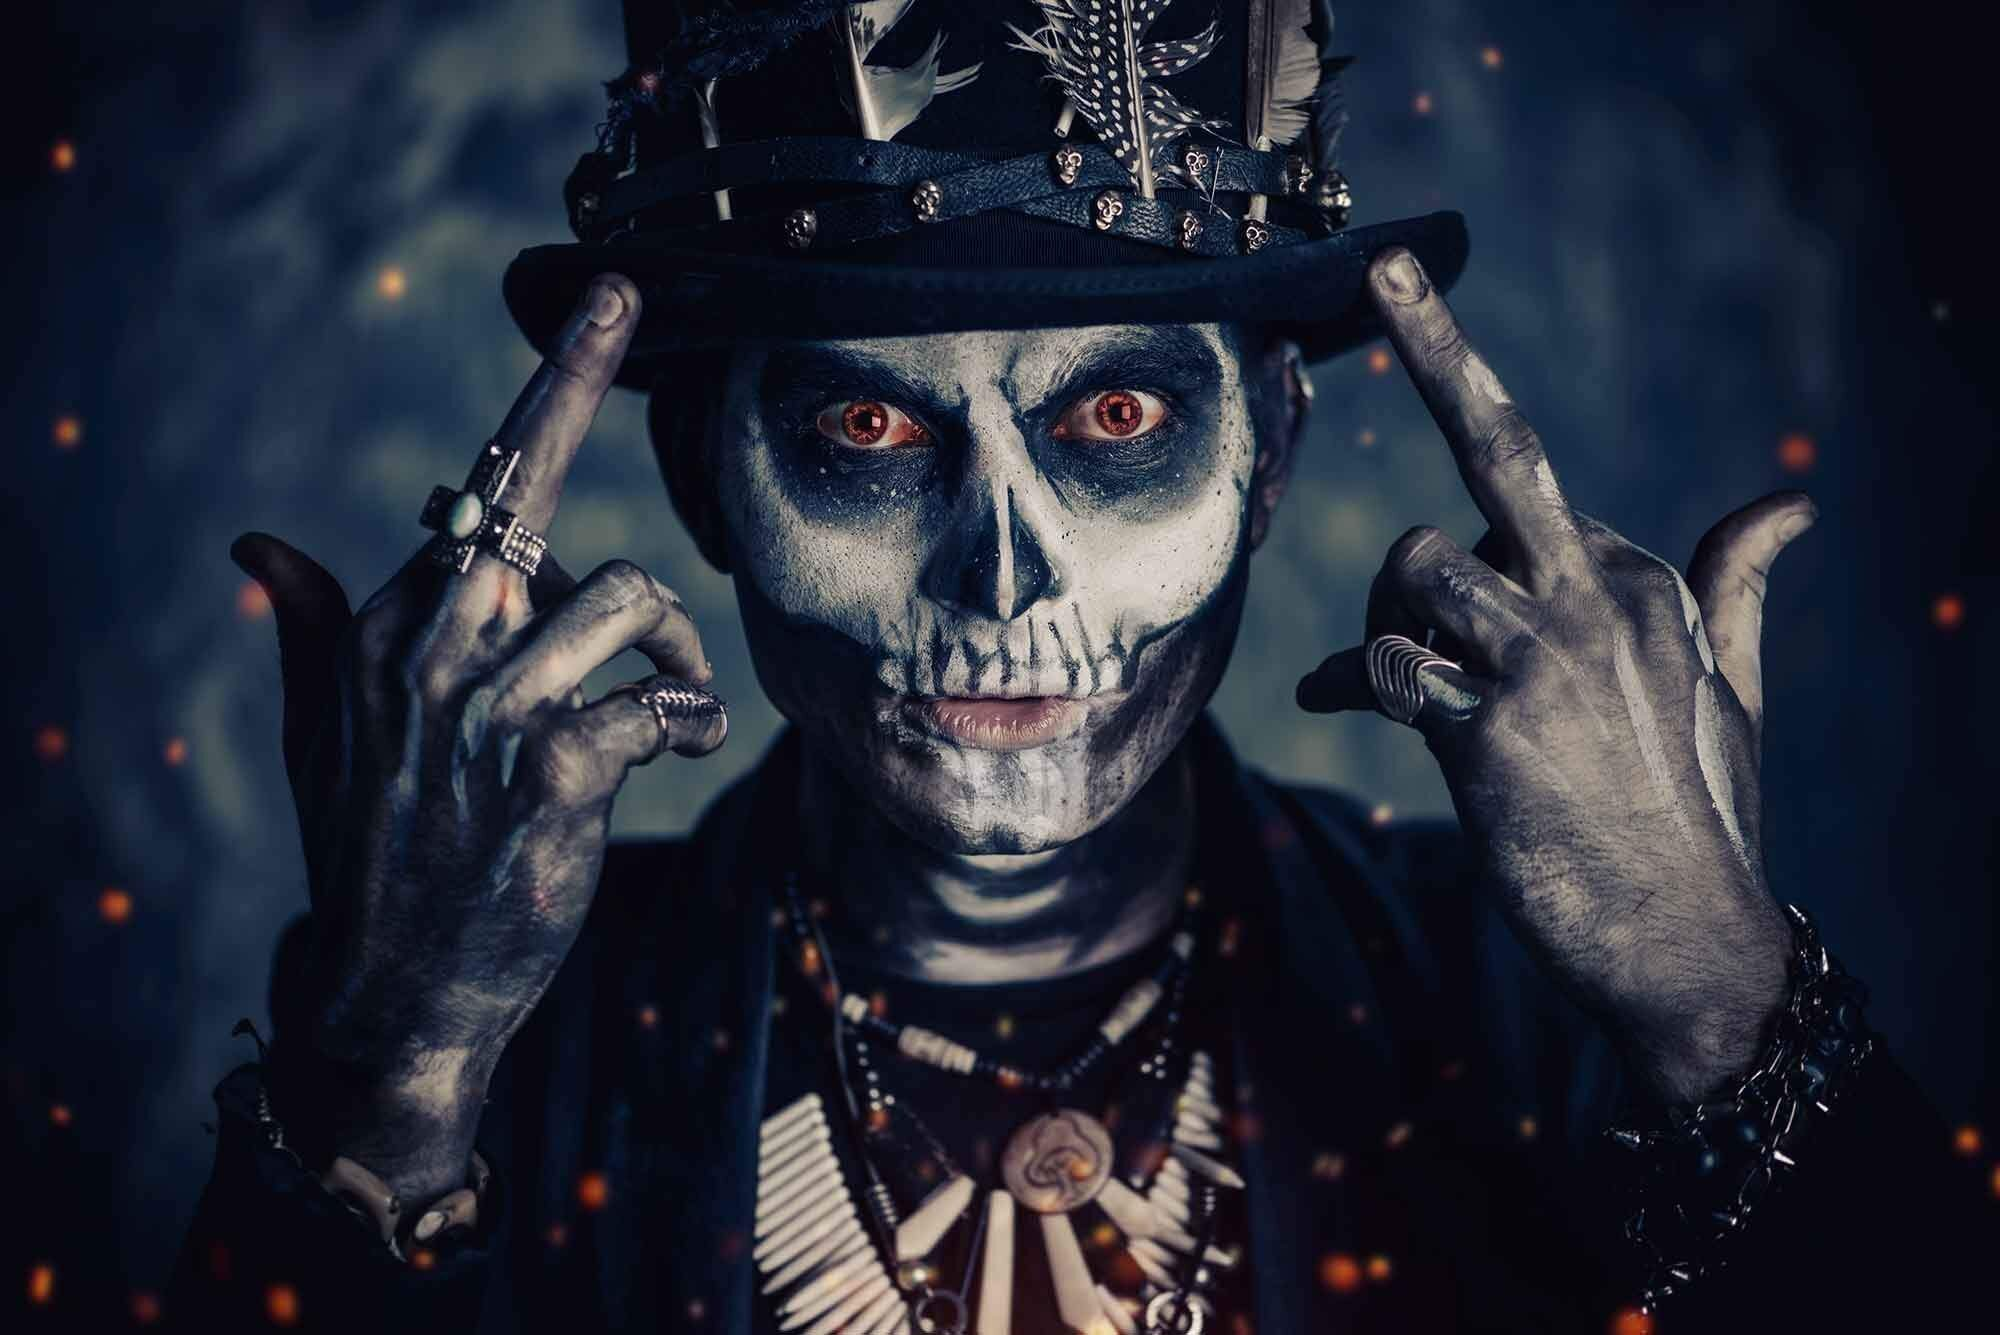 Voodoo & Gothic Themed Clothes and Accessories